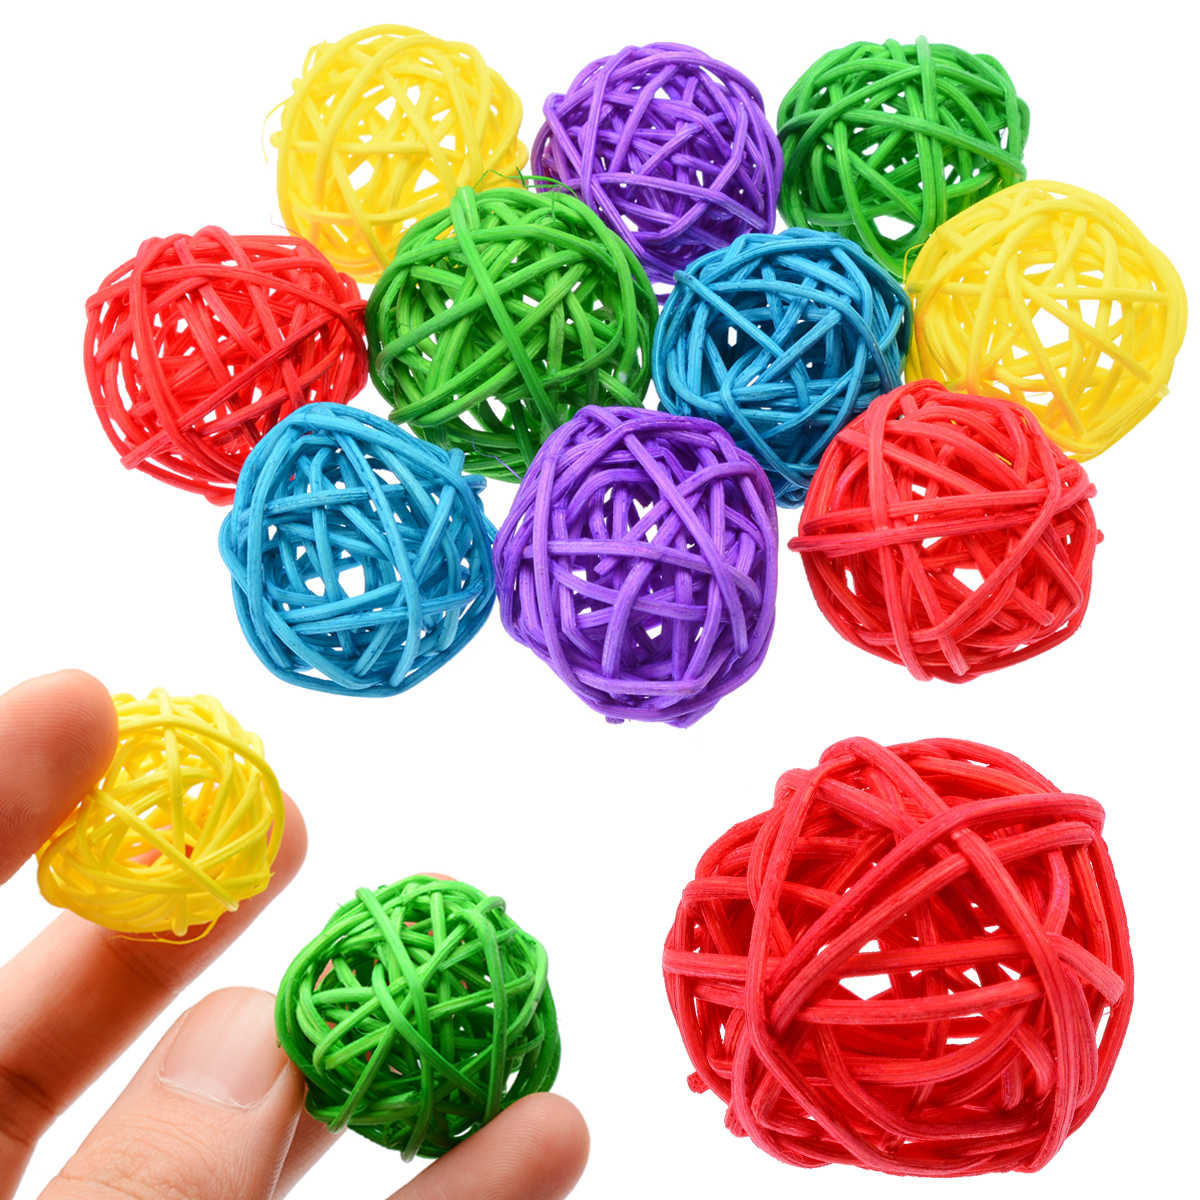 10pcs 3 cm Bird Rattan Ball Chewing Preening Toy For Parrot Budgie Parakeet Cockatiel Interactive Bite Play Toys